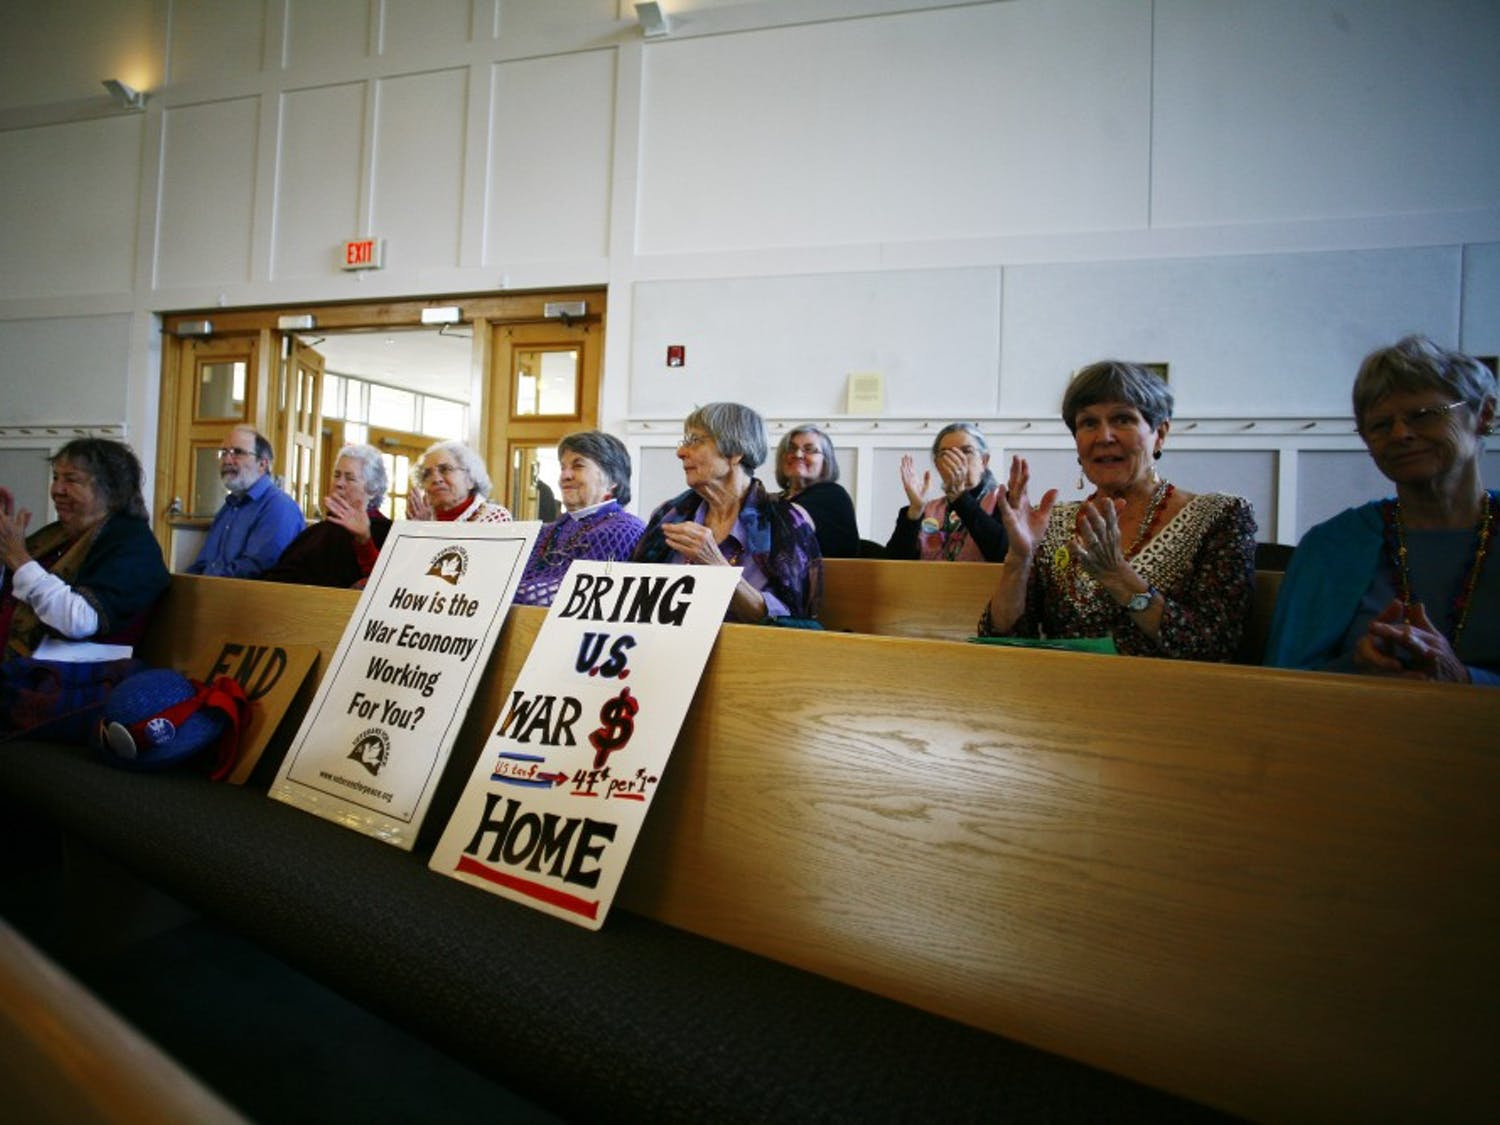 """The Raging Grannies of Chapel Hill held a peace talk event called """"Bring Our War Dollars Home"""" at the United Church of Christ of Chapel Hill on Saturday morning. More than a dozen community leaders spoke to the crowd, including Chapel Hill Mayor Mark Kleinschmidt, Representative David Price, N.C. Senator Ellie Kinnaird and UNC student Zaina Alsous.The Raging Grannies clapped during and after every speaker and wore peace paraphernalia."""